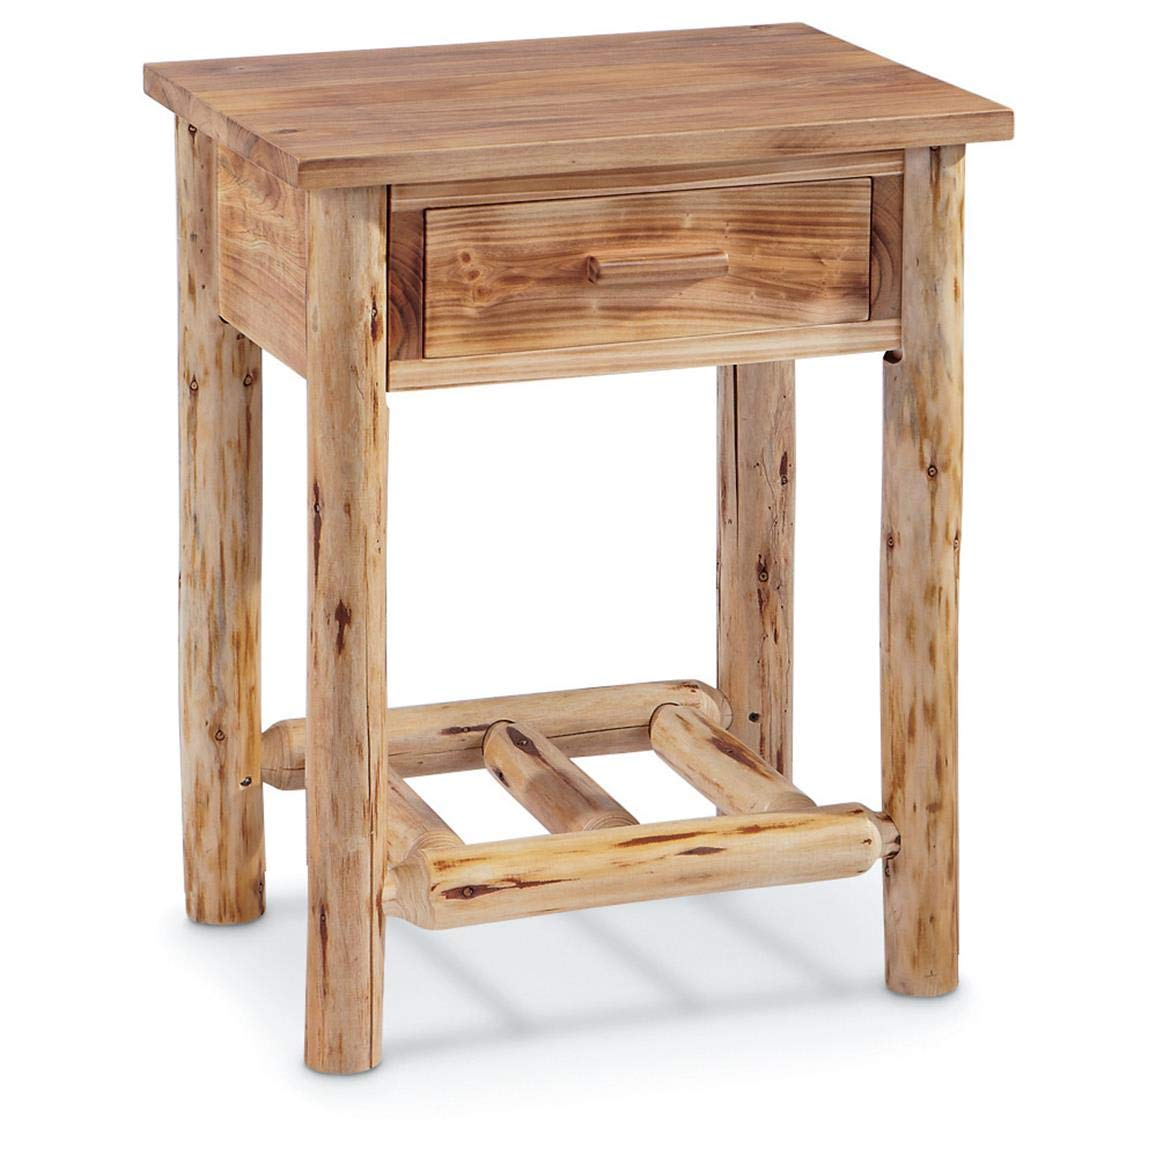 castlecreek log end table kitchen dining furniture tables industrial pipe computer desk old style side sears coffee sets black cherry wood tures sofa living room round glass